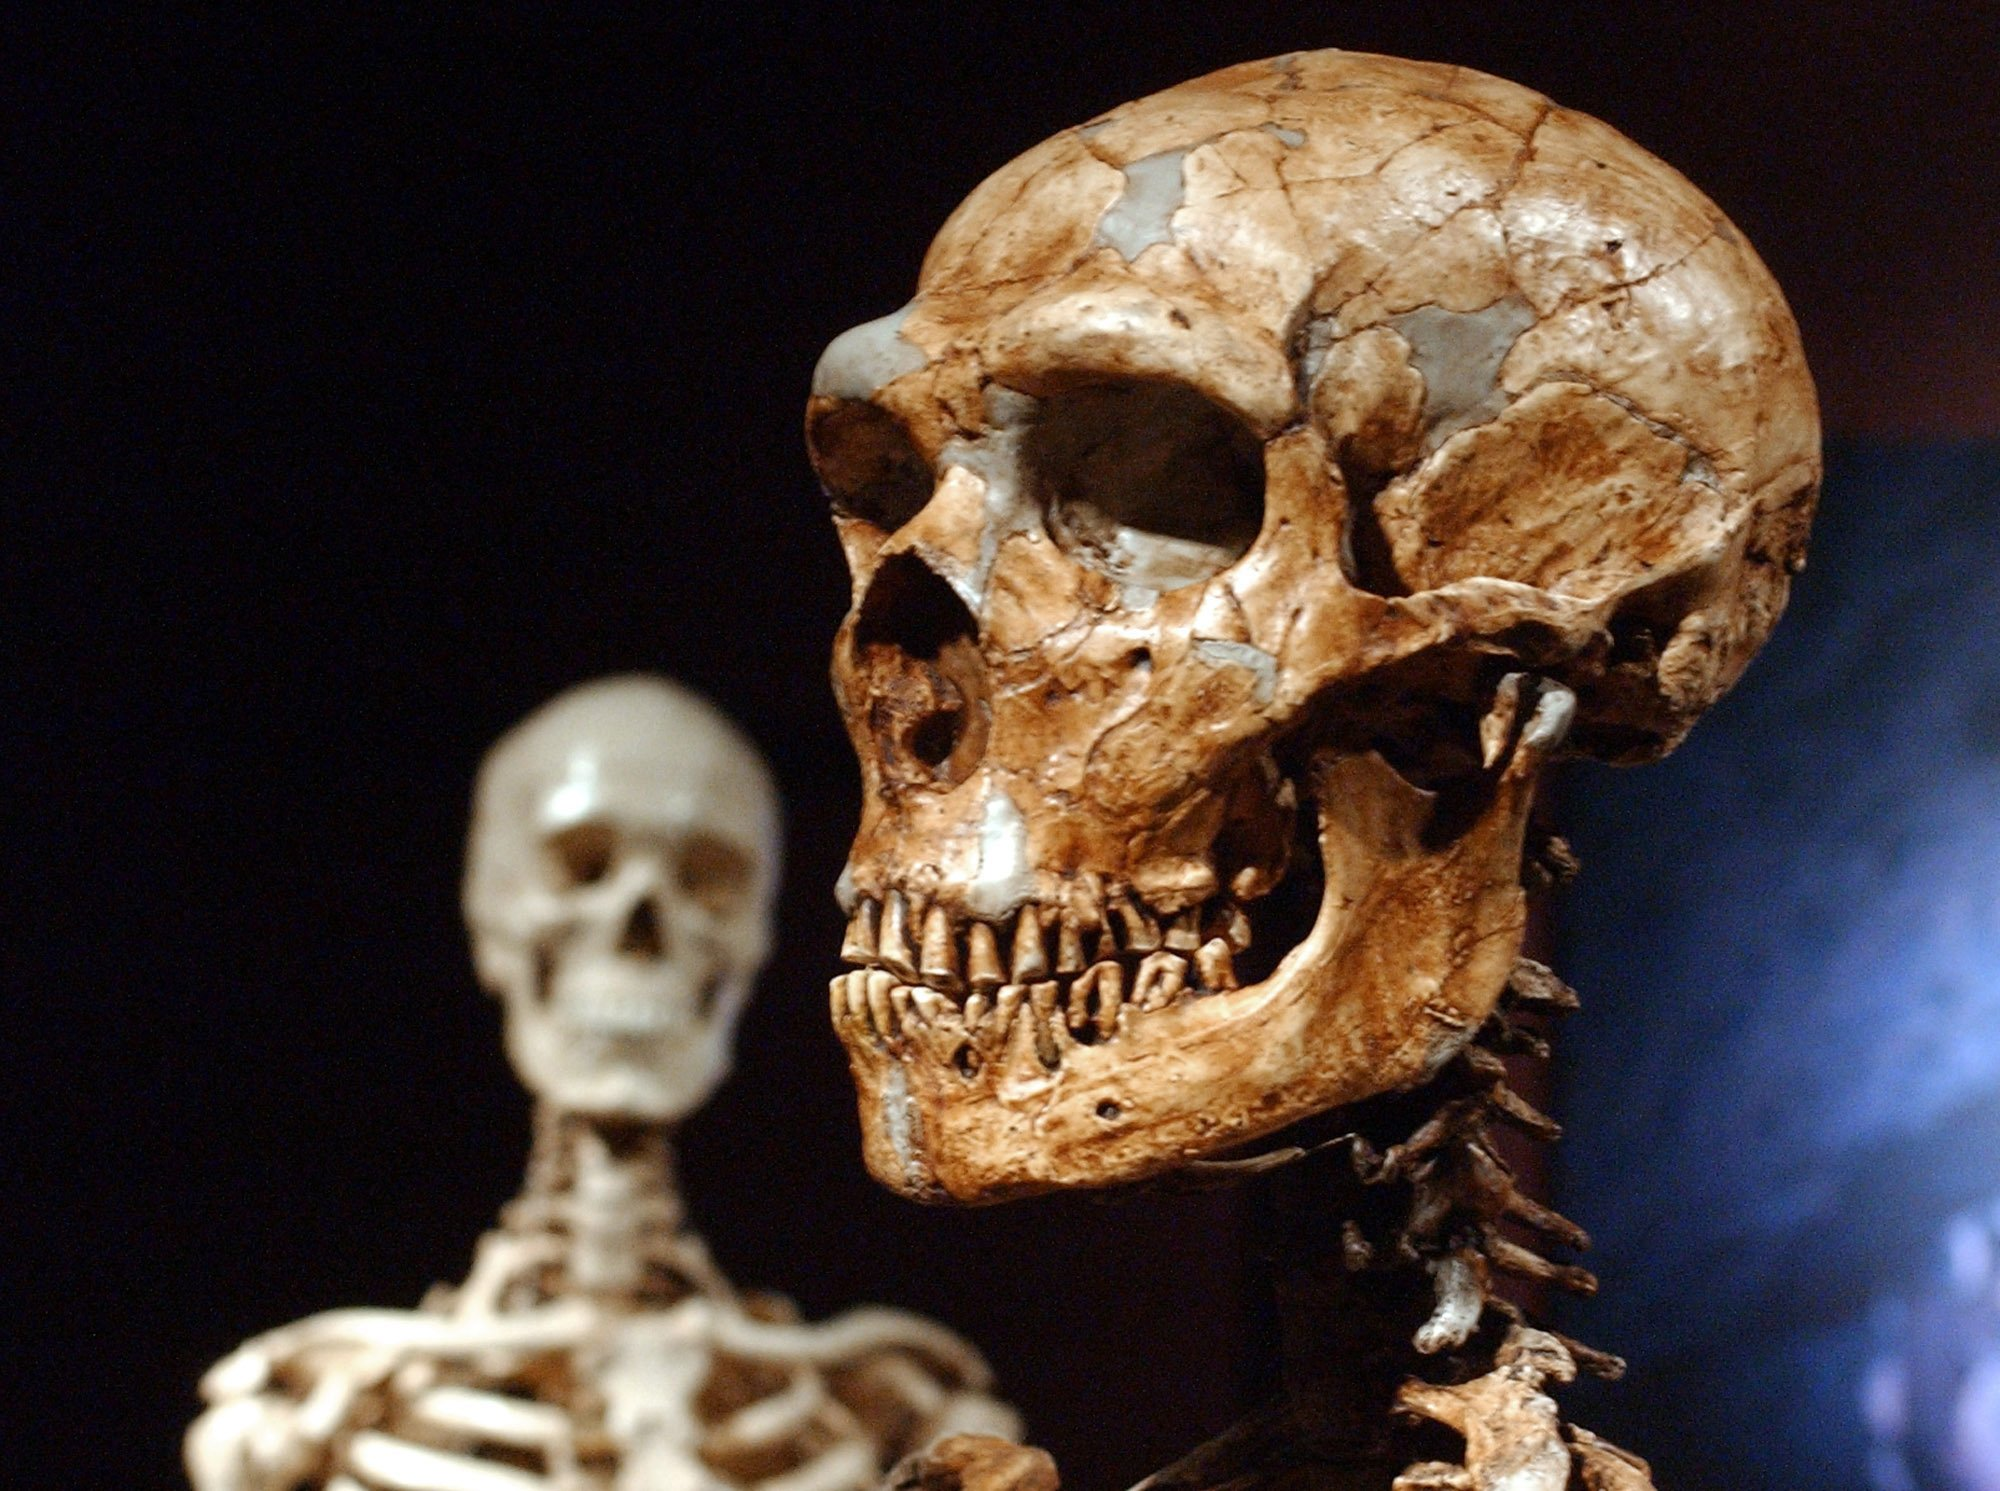 From right: A reconstructed Neanderthal skeleton and a modern human version of a skeleton, on display at the Museum of Natural History in New York City, on Jan. 8, 2003.